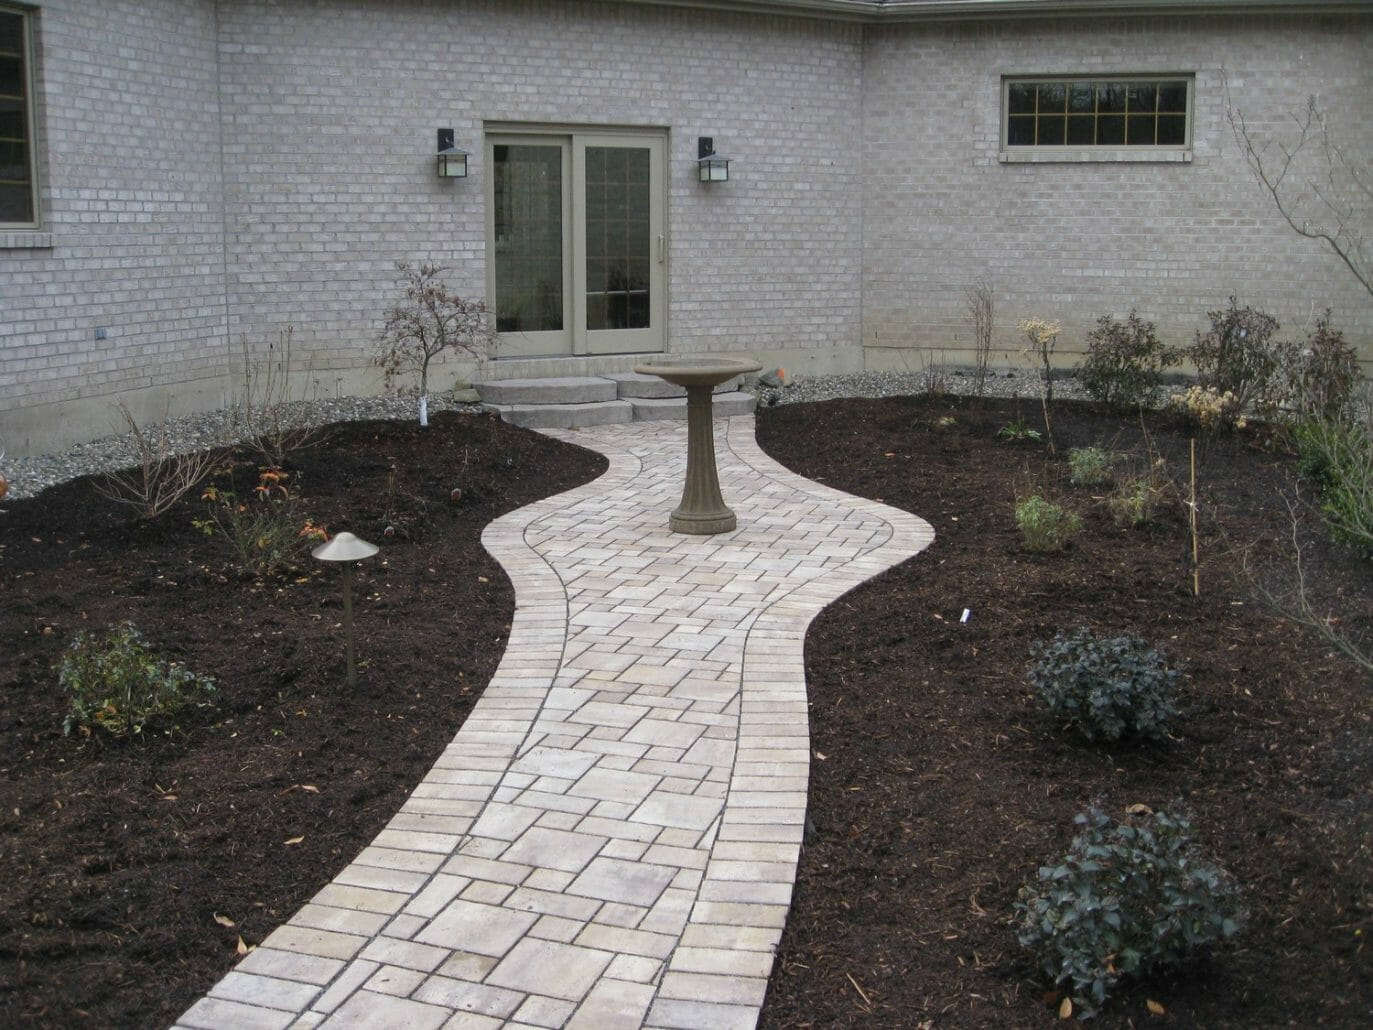 Wynantskill NY sidewalk landscape design 1373x1030 - Landscape Plan Installation and Project Management